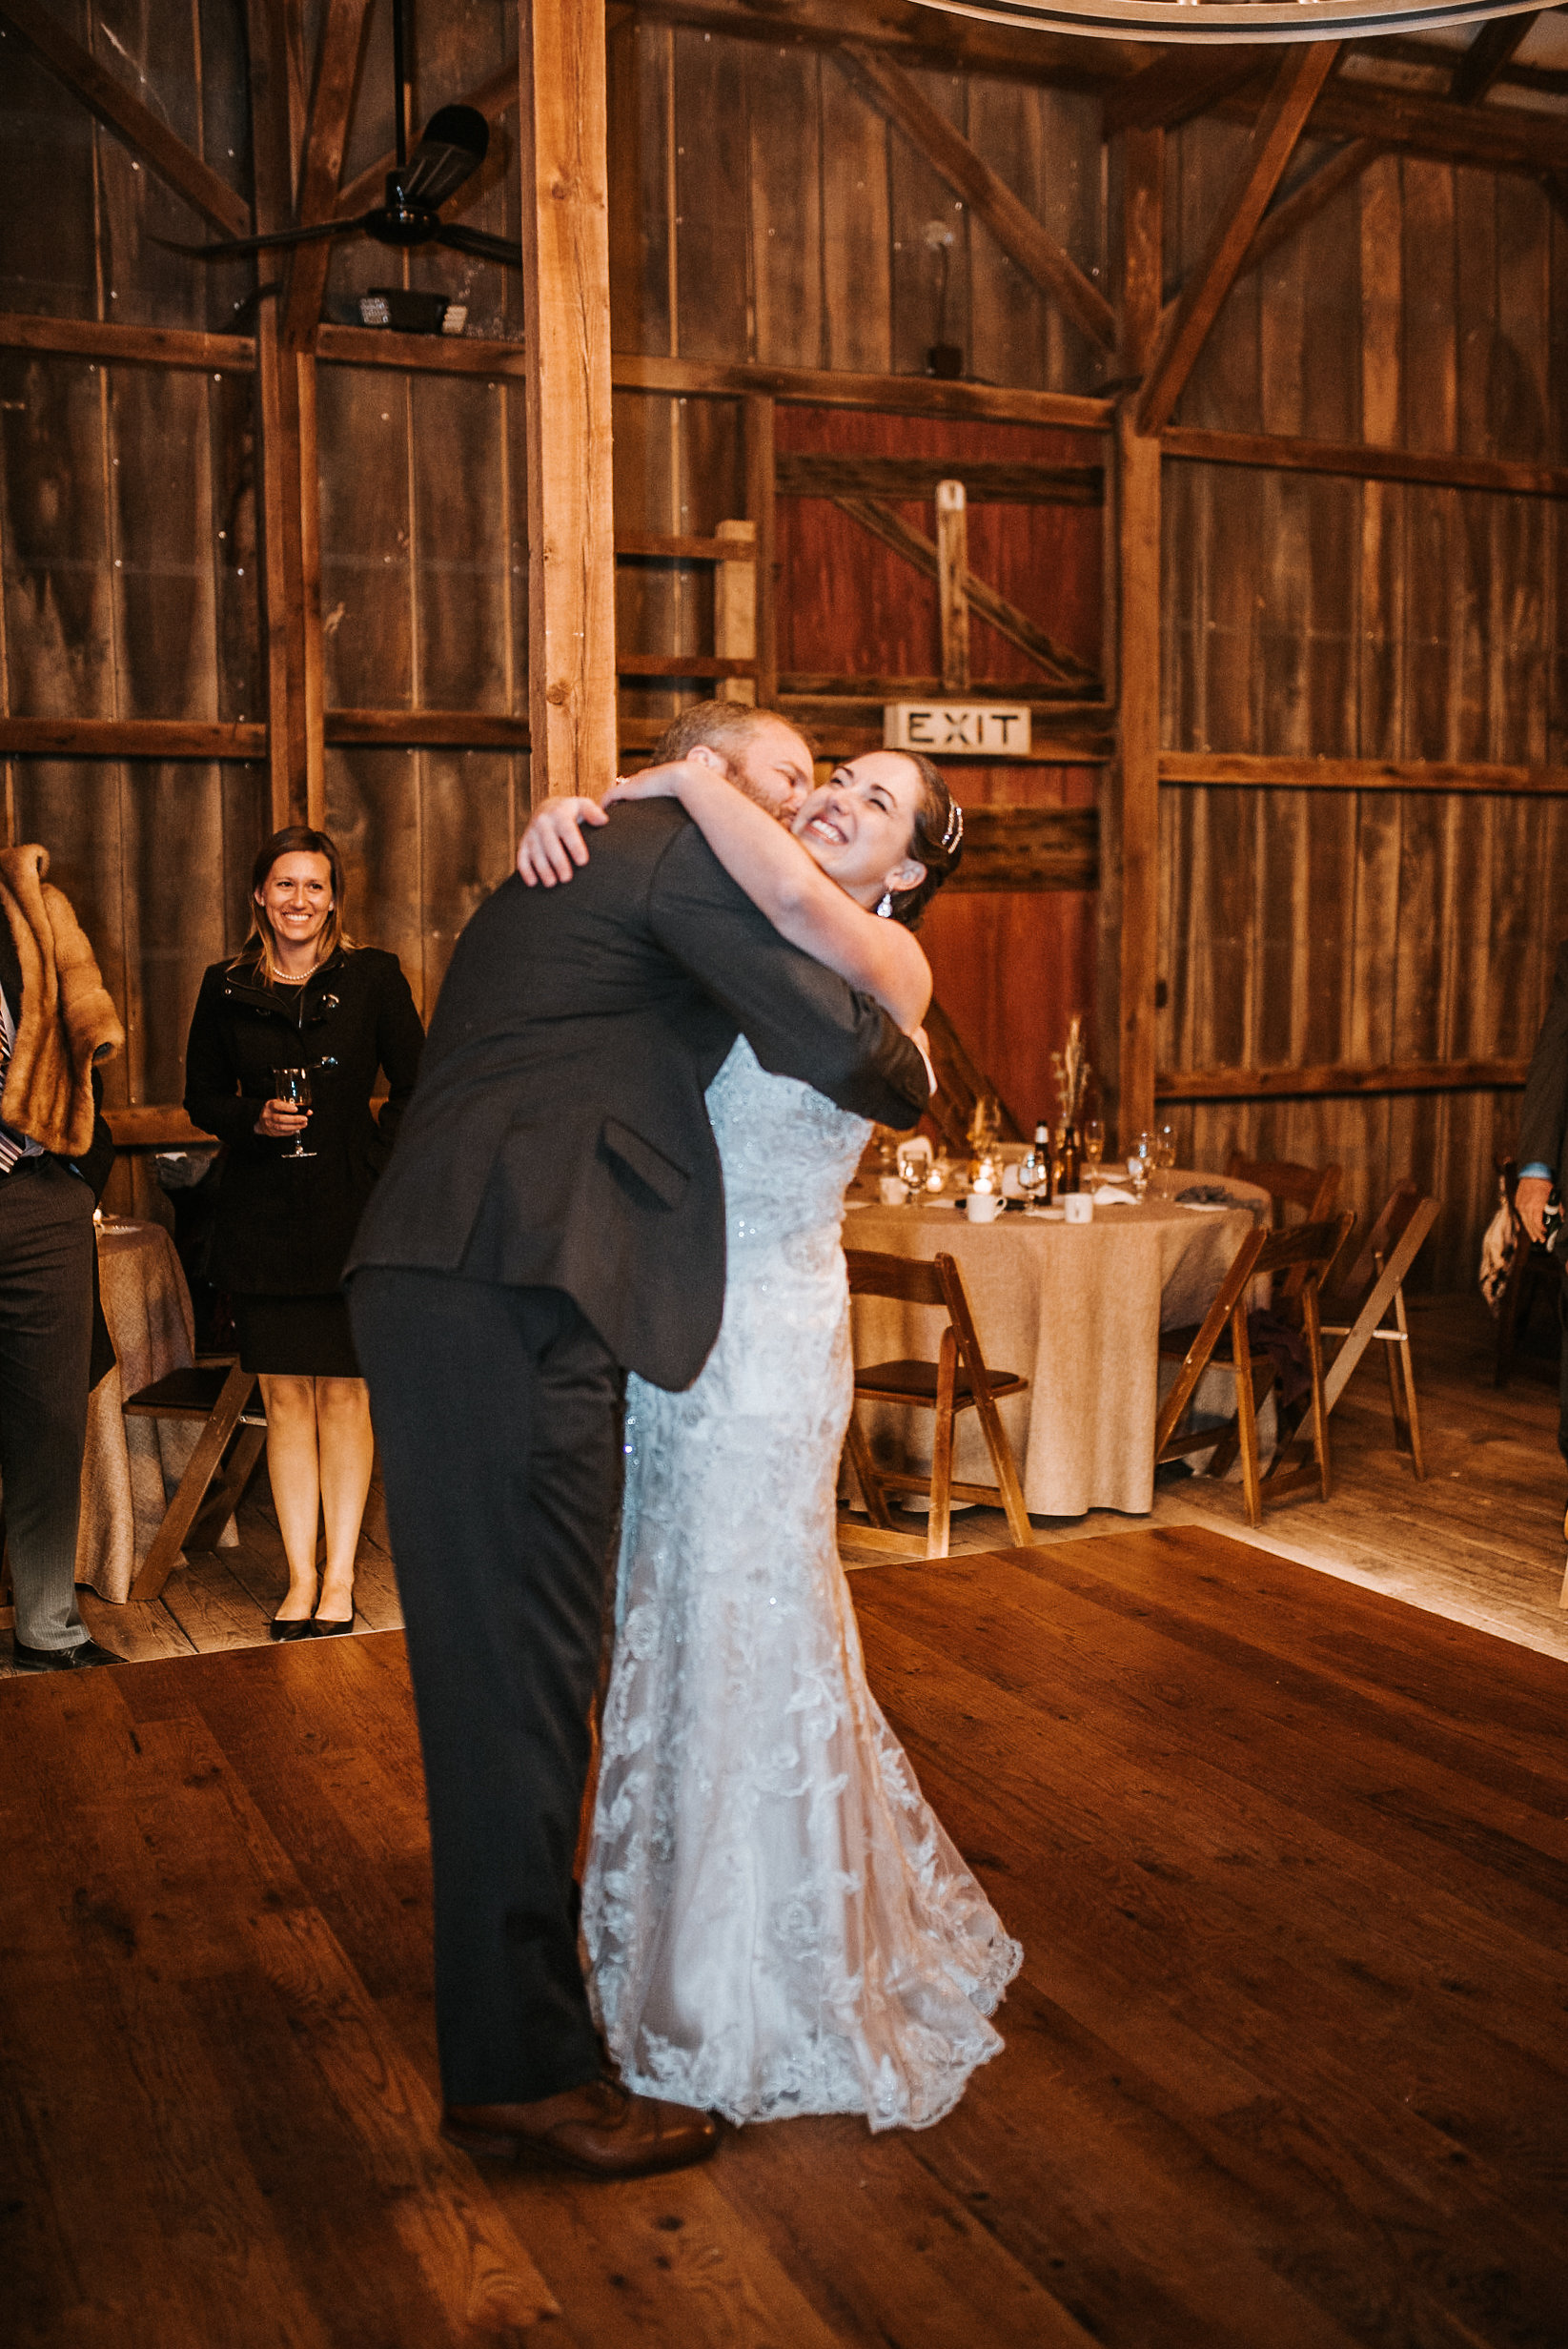 Bride and groom hugging on dance floor